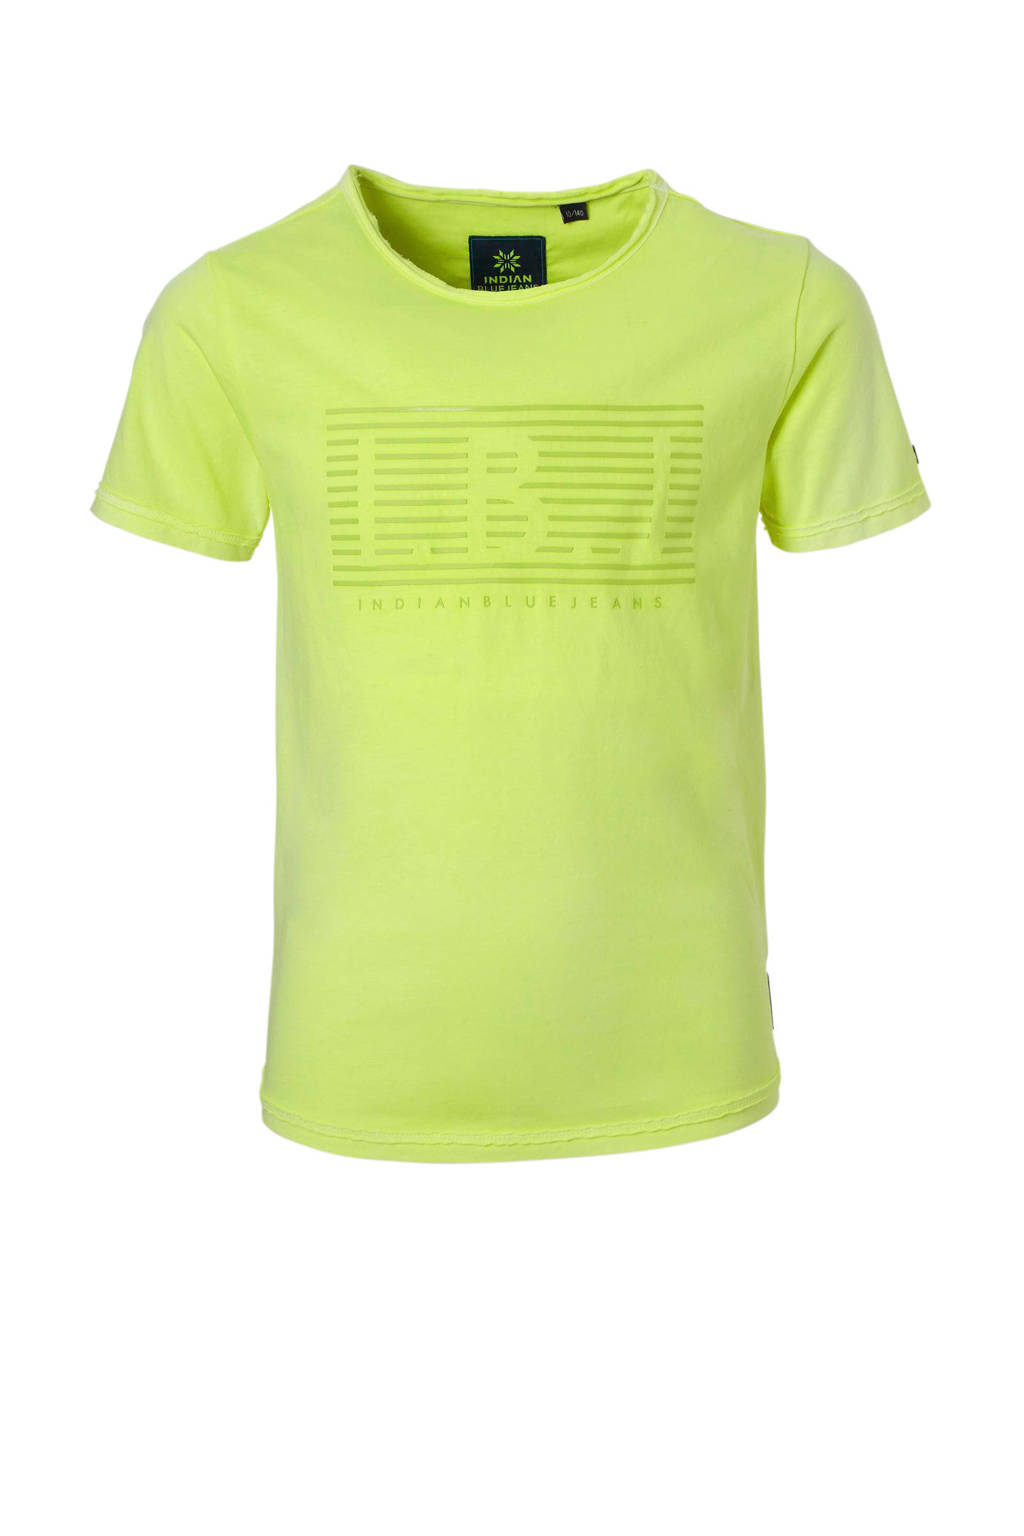 Indian Blue Jeans T-shirt met logo lime, Limegroen